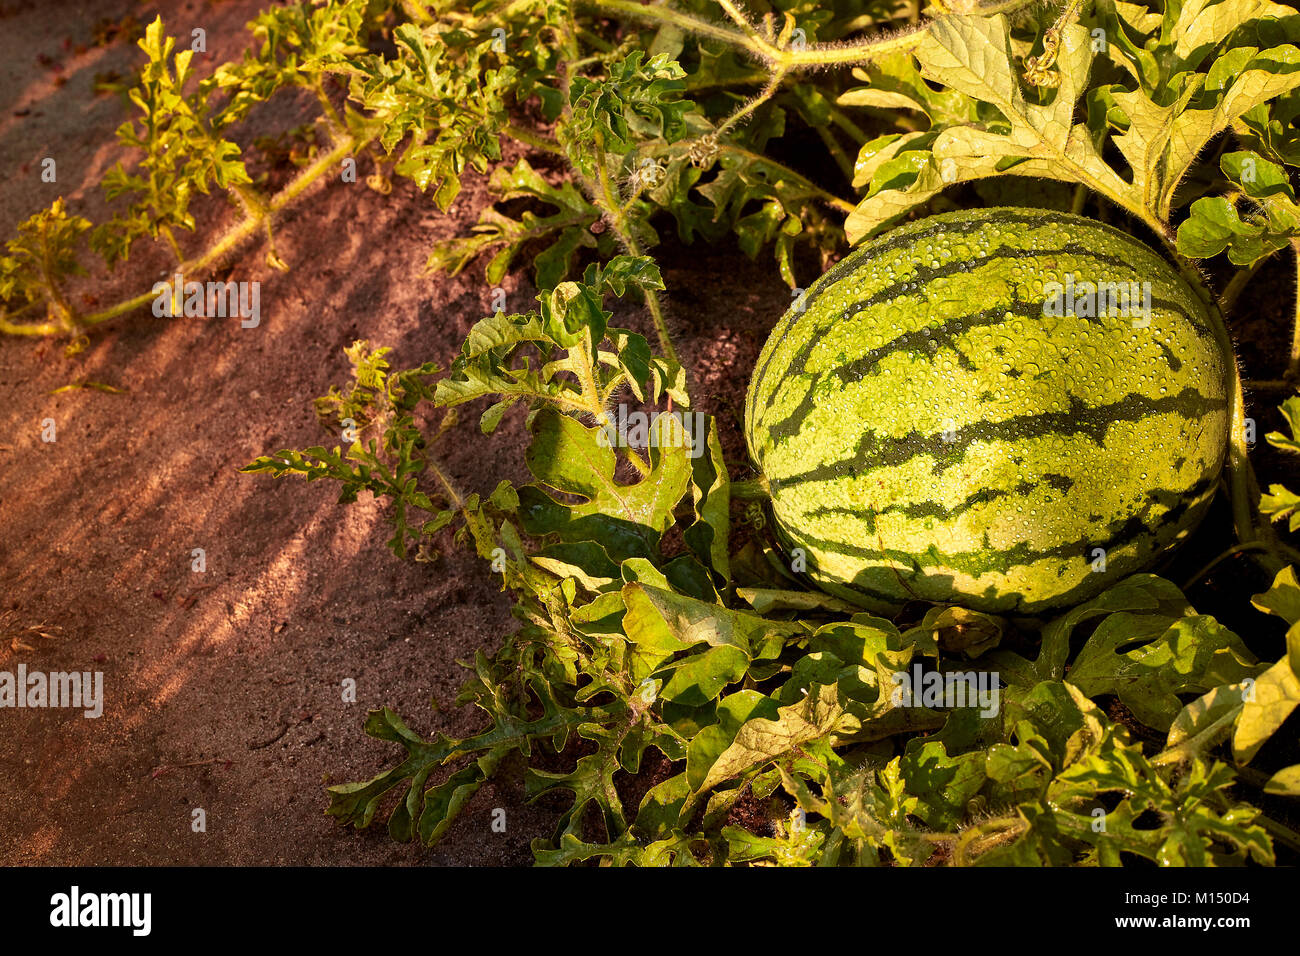 how to grow watermelon in bc